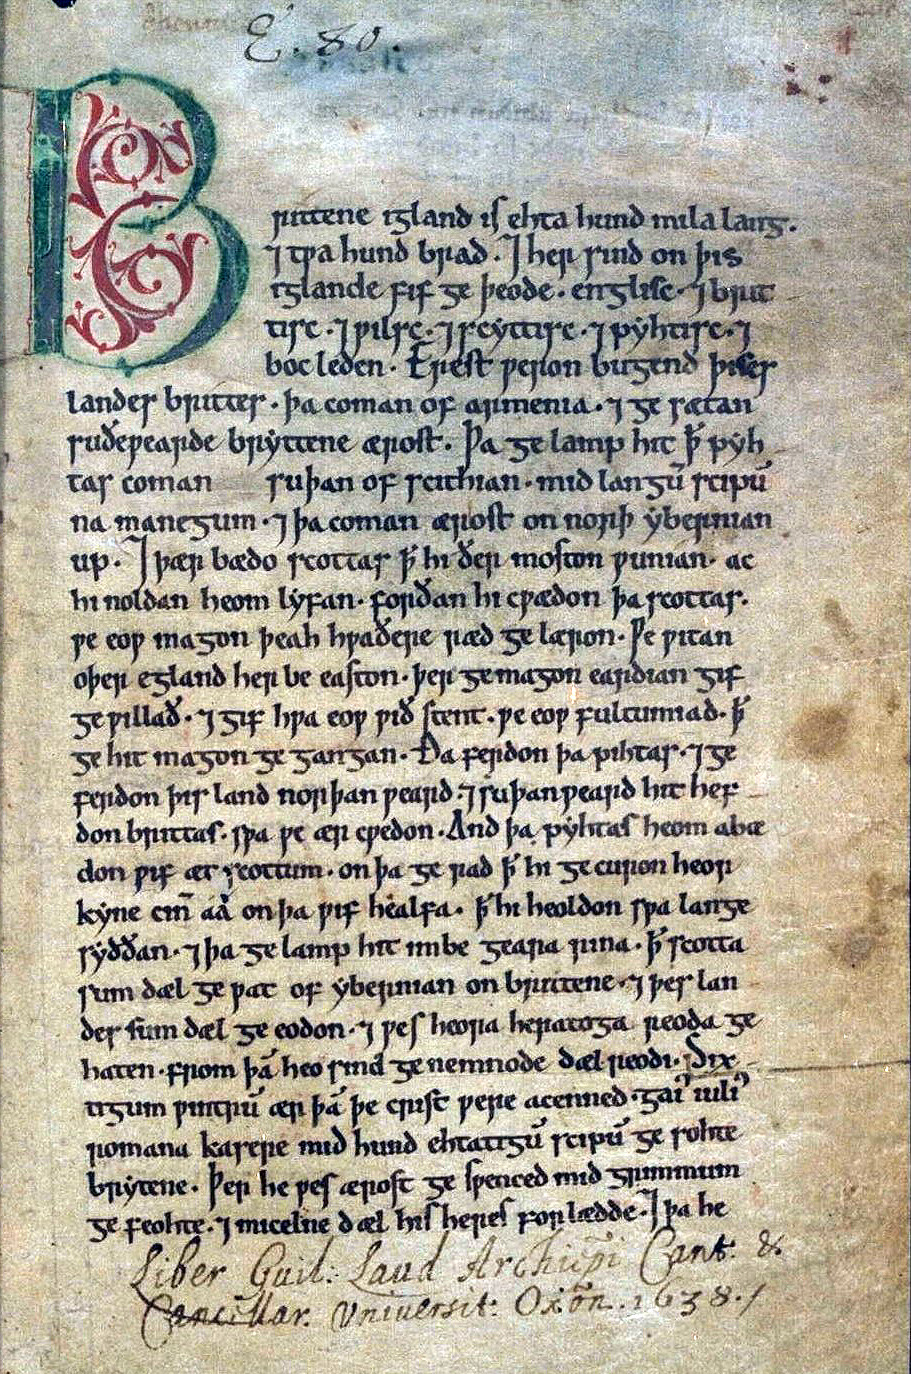 essays on the anglo-saxon chronicles The anglo-saxon chronicle began to be compiled in around 890 ad, at the command of king alfred the great (871- 899) and consists of a series of annals written in the old english language alfred ordered that copies be made of the original manuscripts and distributed to monasteries across the .